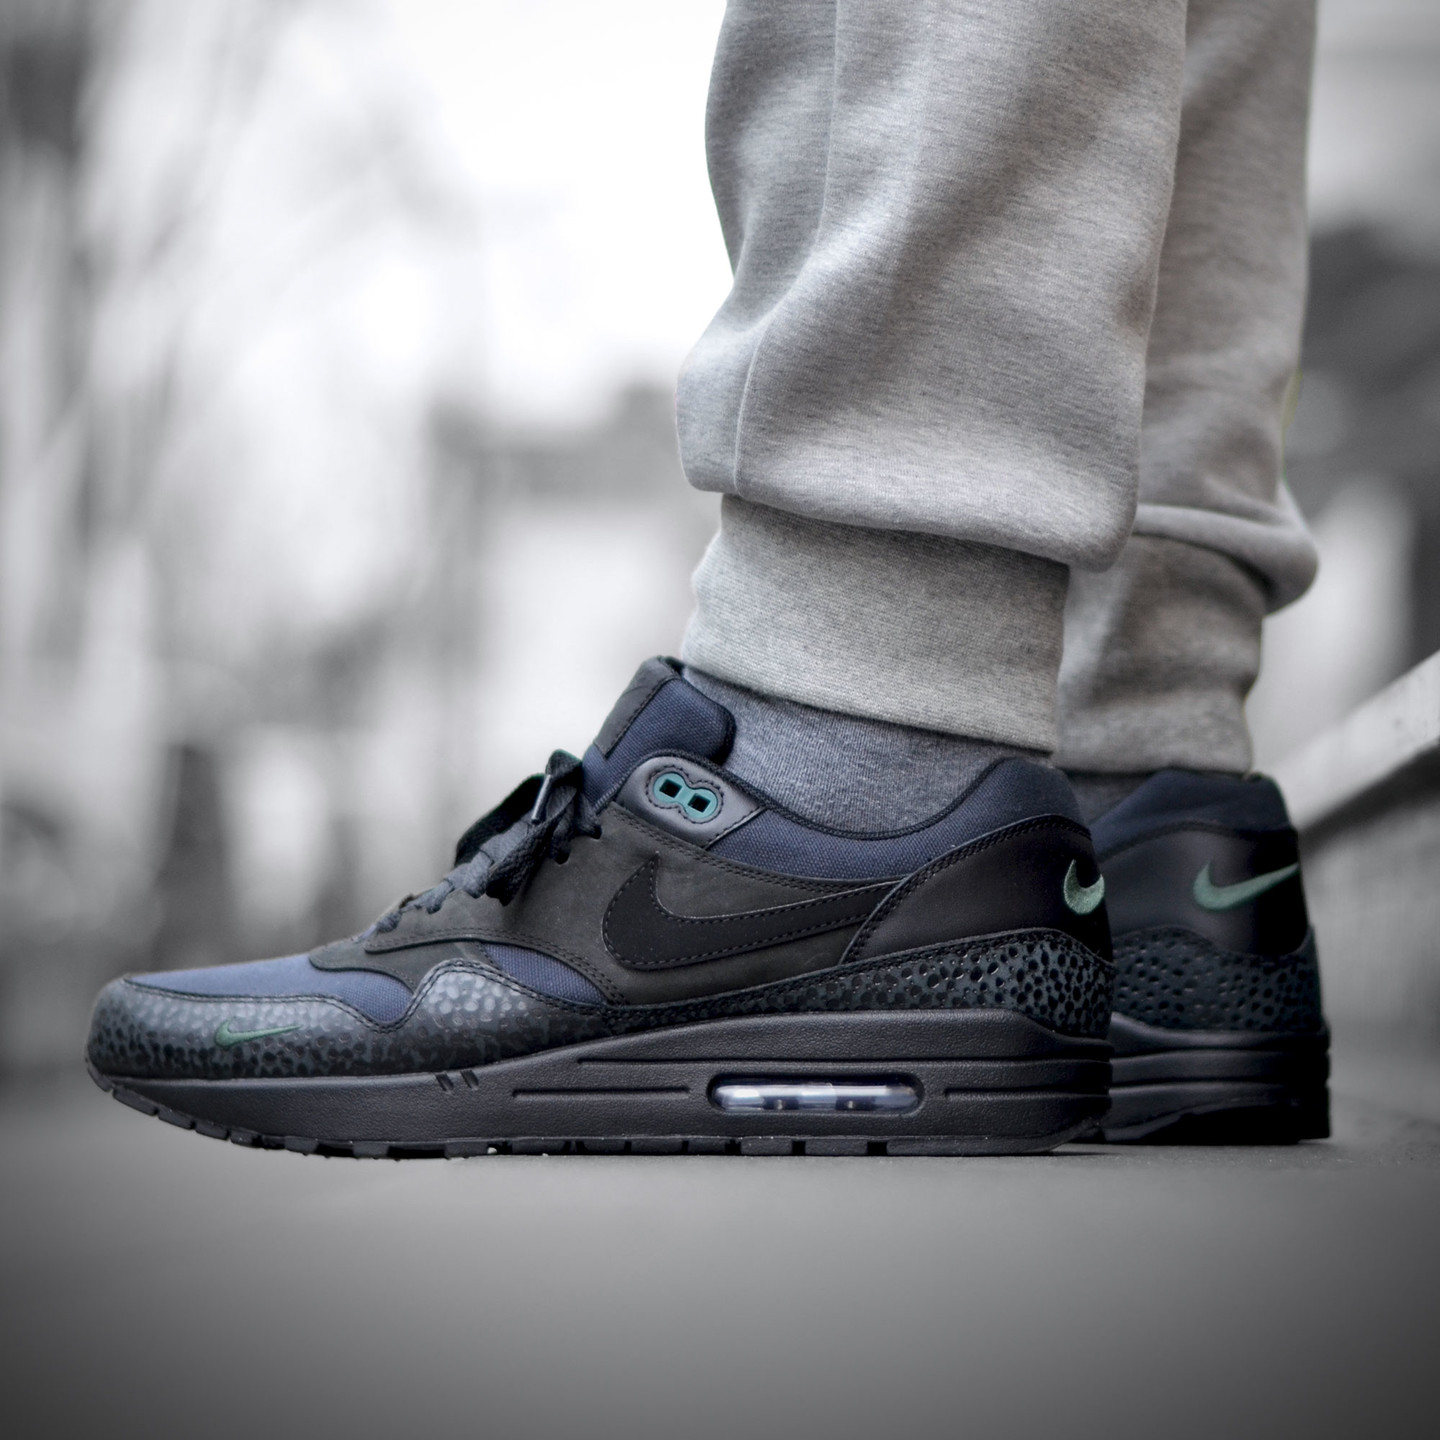 Nike Air Max 1 Premium 'Bonsai Safari' Black / Black / Bonsai 512033-030-44